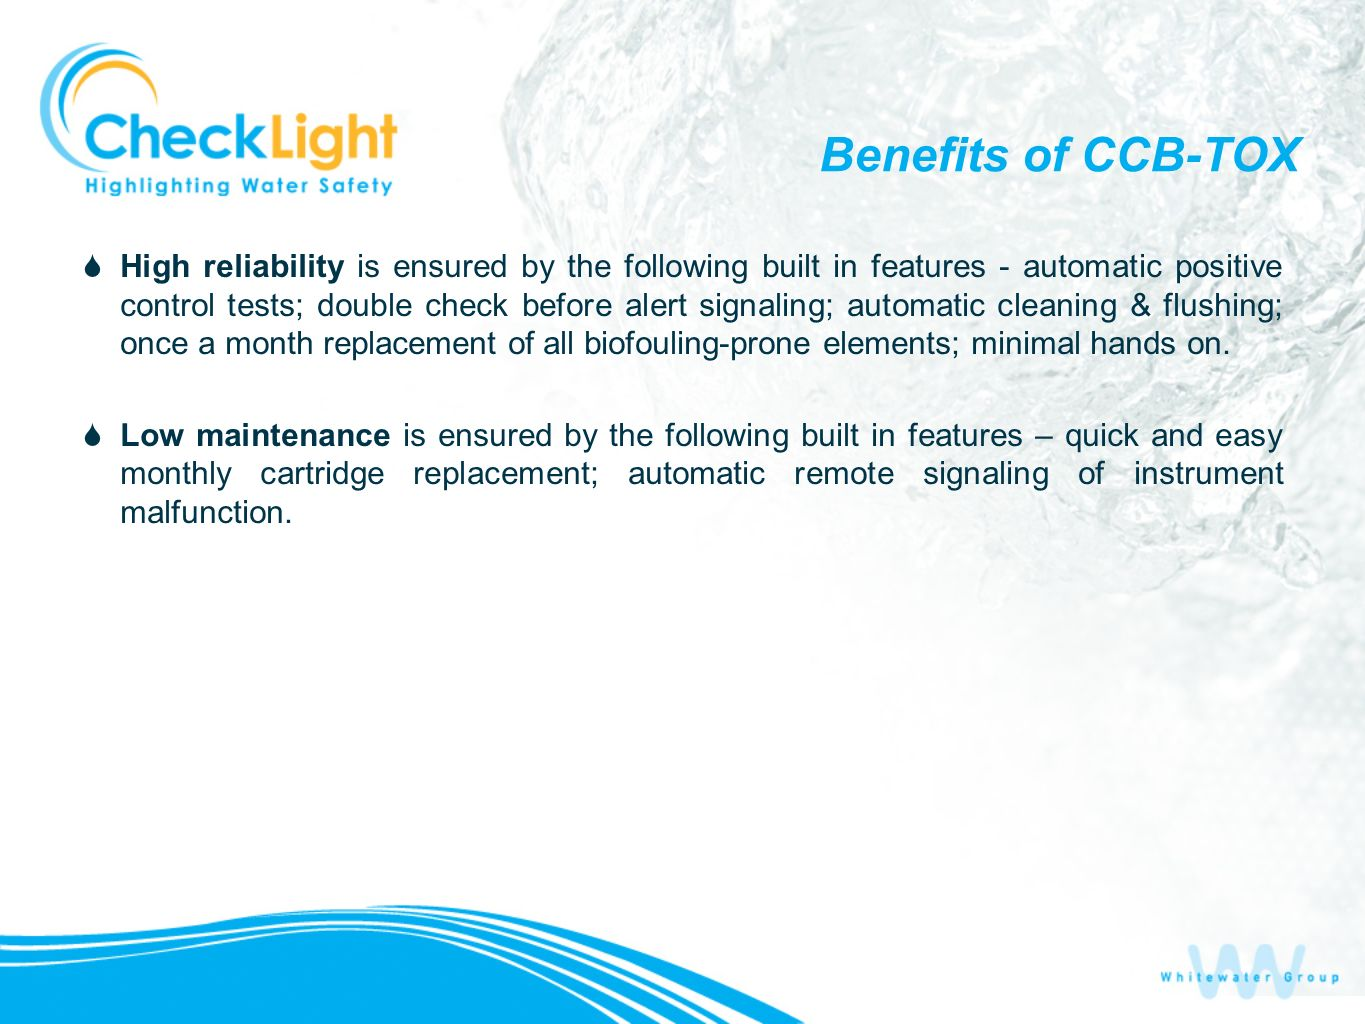 Benefits of CCB-TOX High reliability is ensured by the following built in features - automatic positive control tests; double check before alert signaling; automatic cleaning & flushing; once a month replacement of all biofouling-prone elements; minimal hands on.